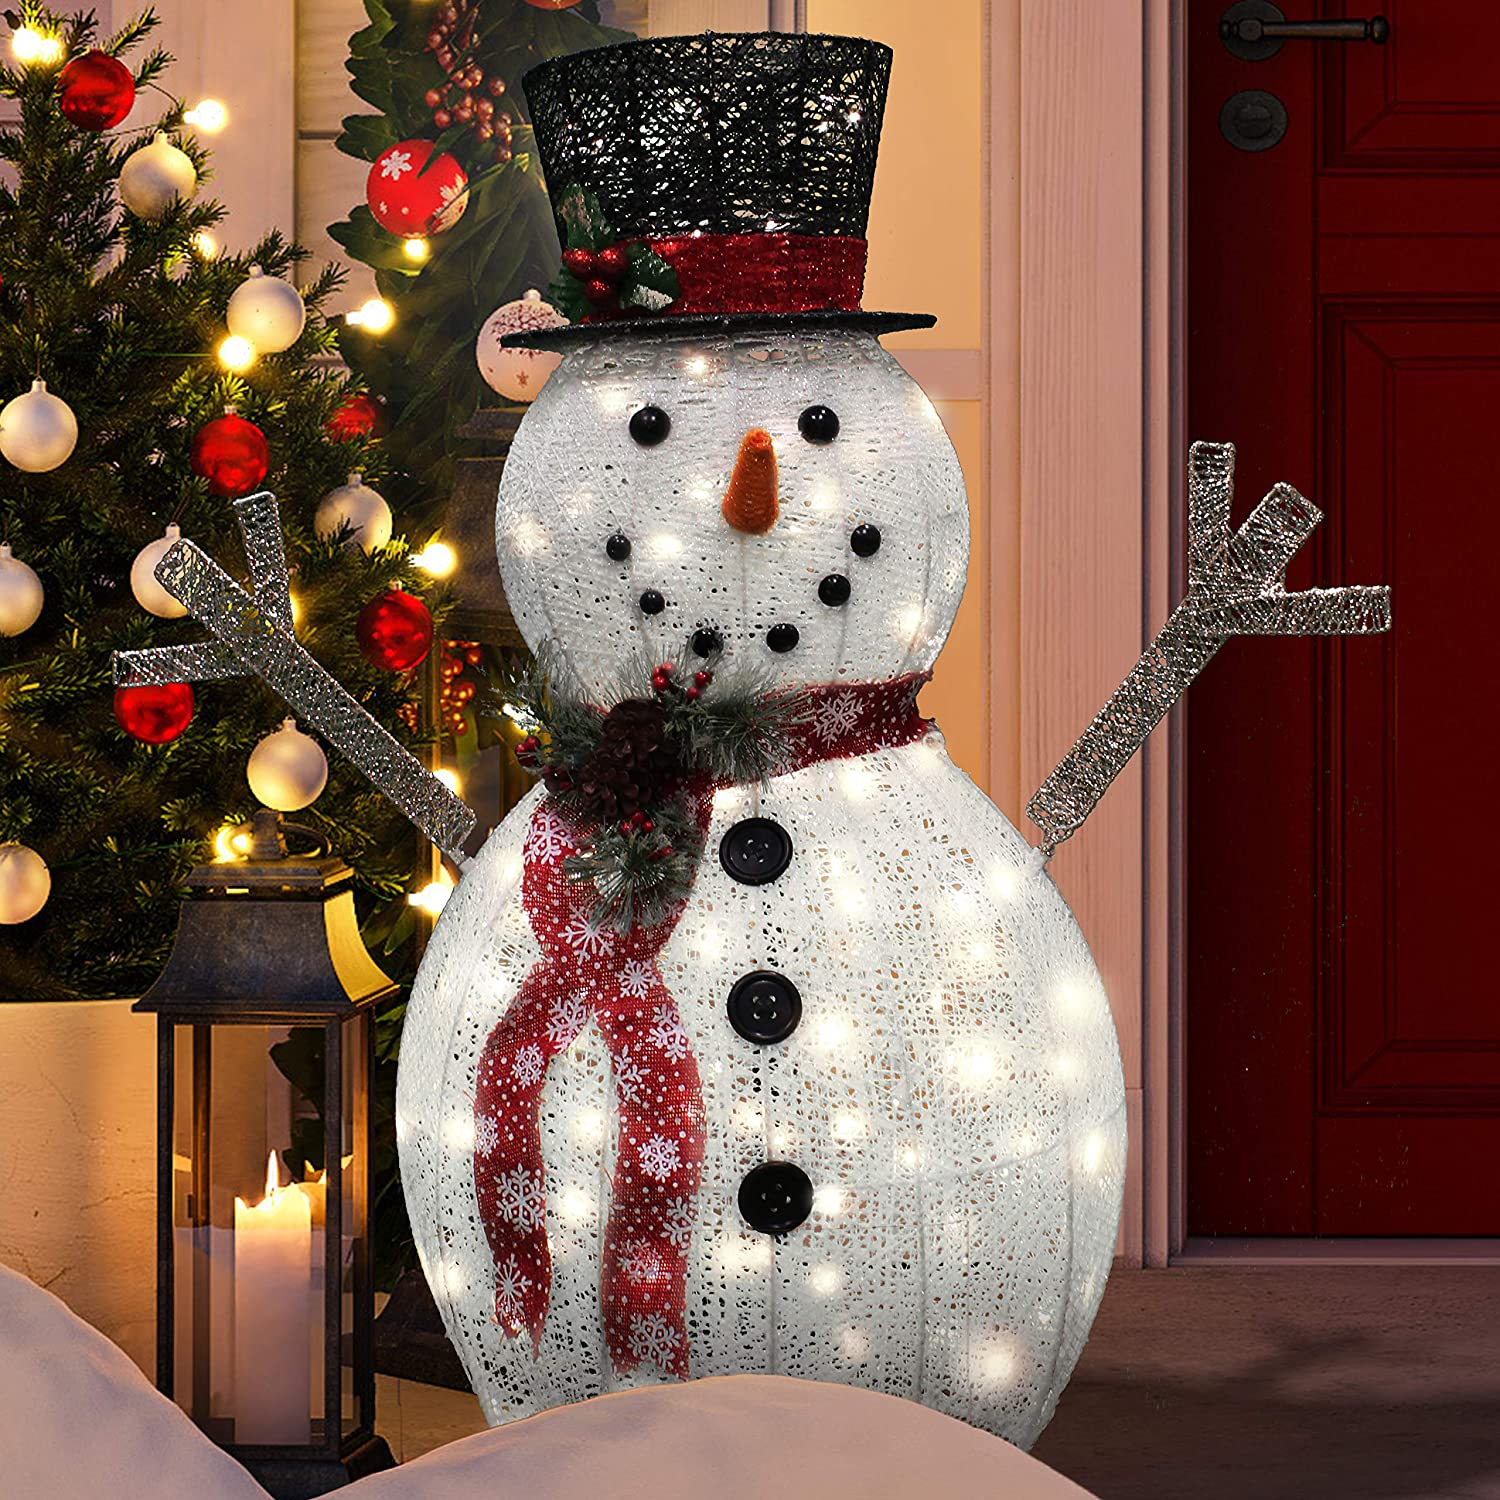 Joiedomi 3ft Cotton Snowman LED Yard Light for Christmas Outdoor Yard Garden Decorations, Christmas Event Decoration, Christmas Eve Night Decor